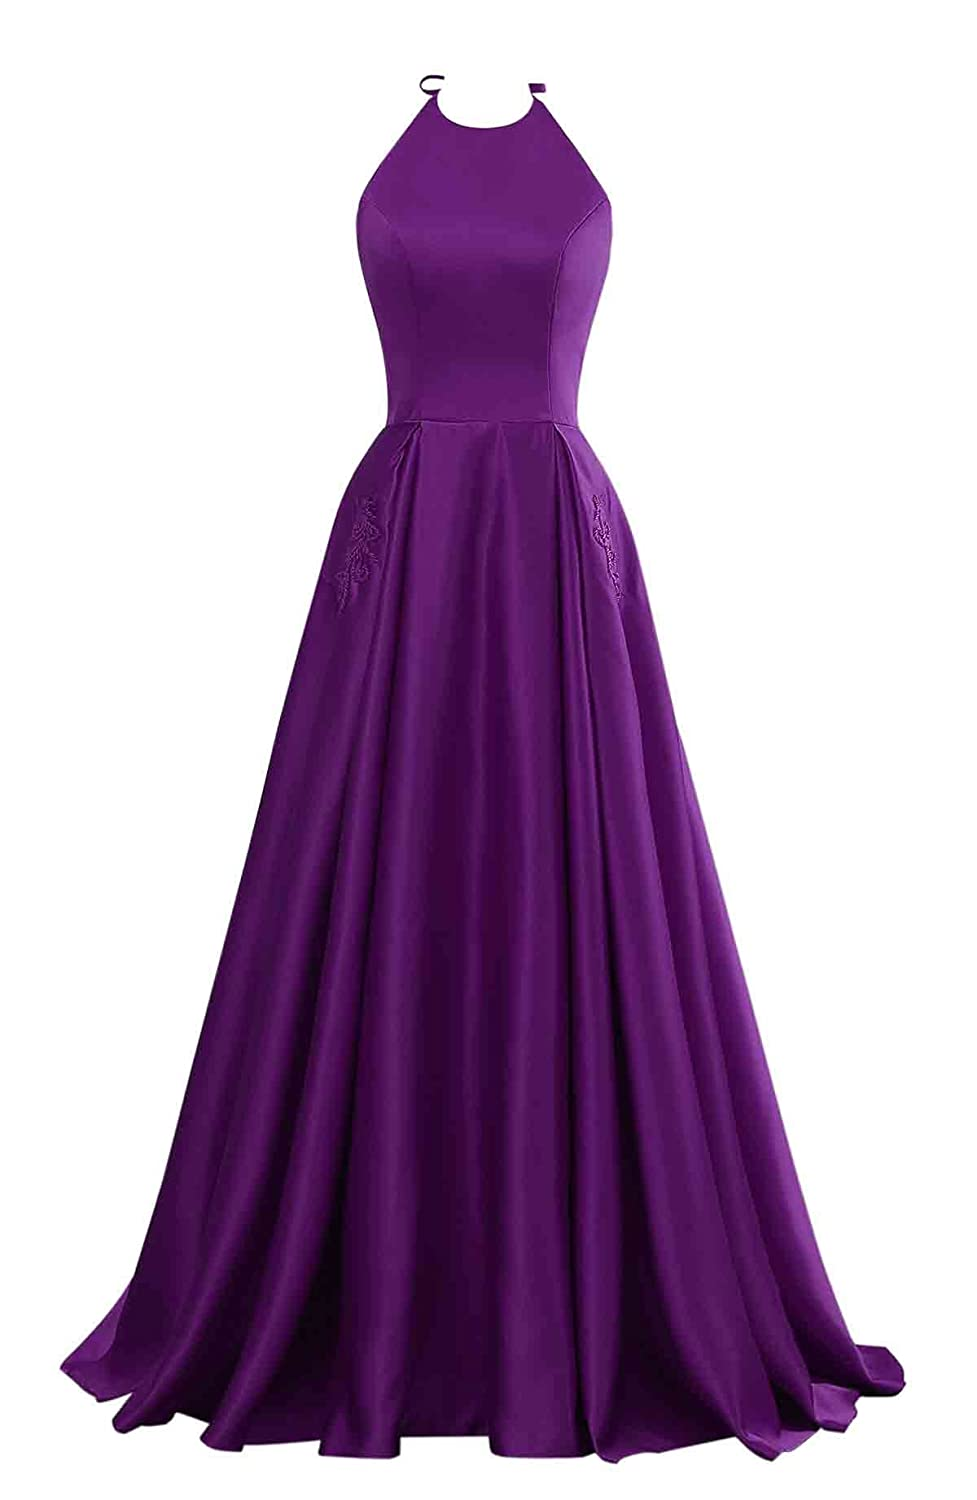 Purple Changuan Halter Aline Satin Evening Prom Dresses for Women Beaded Long Formal Gown with Pockets